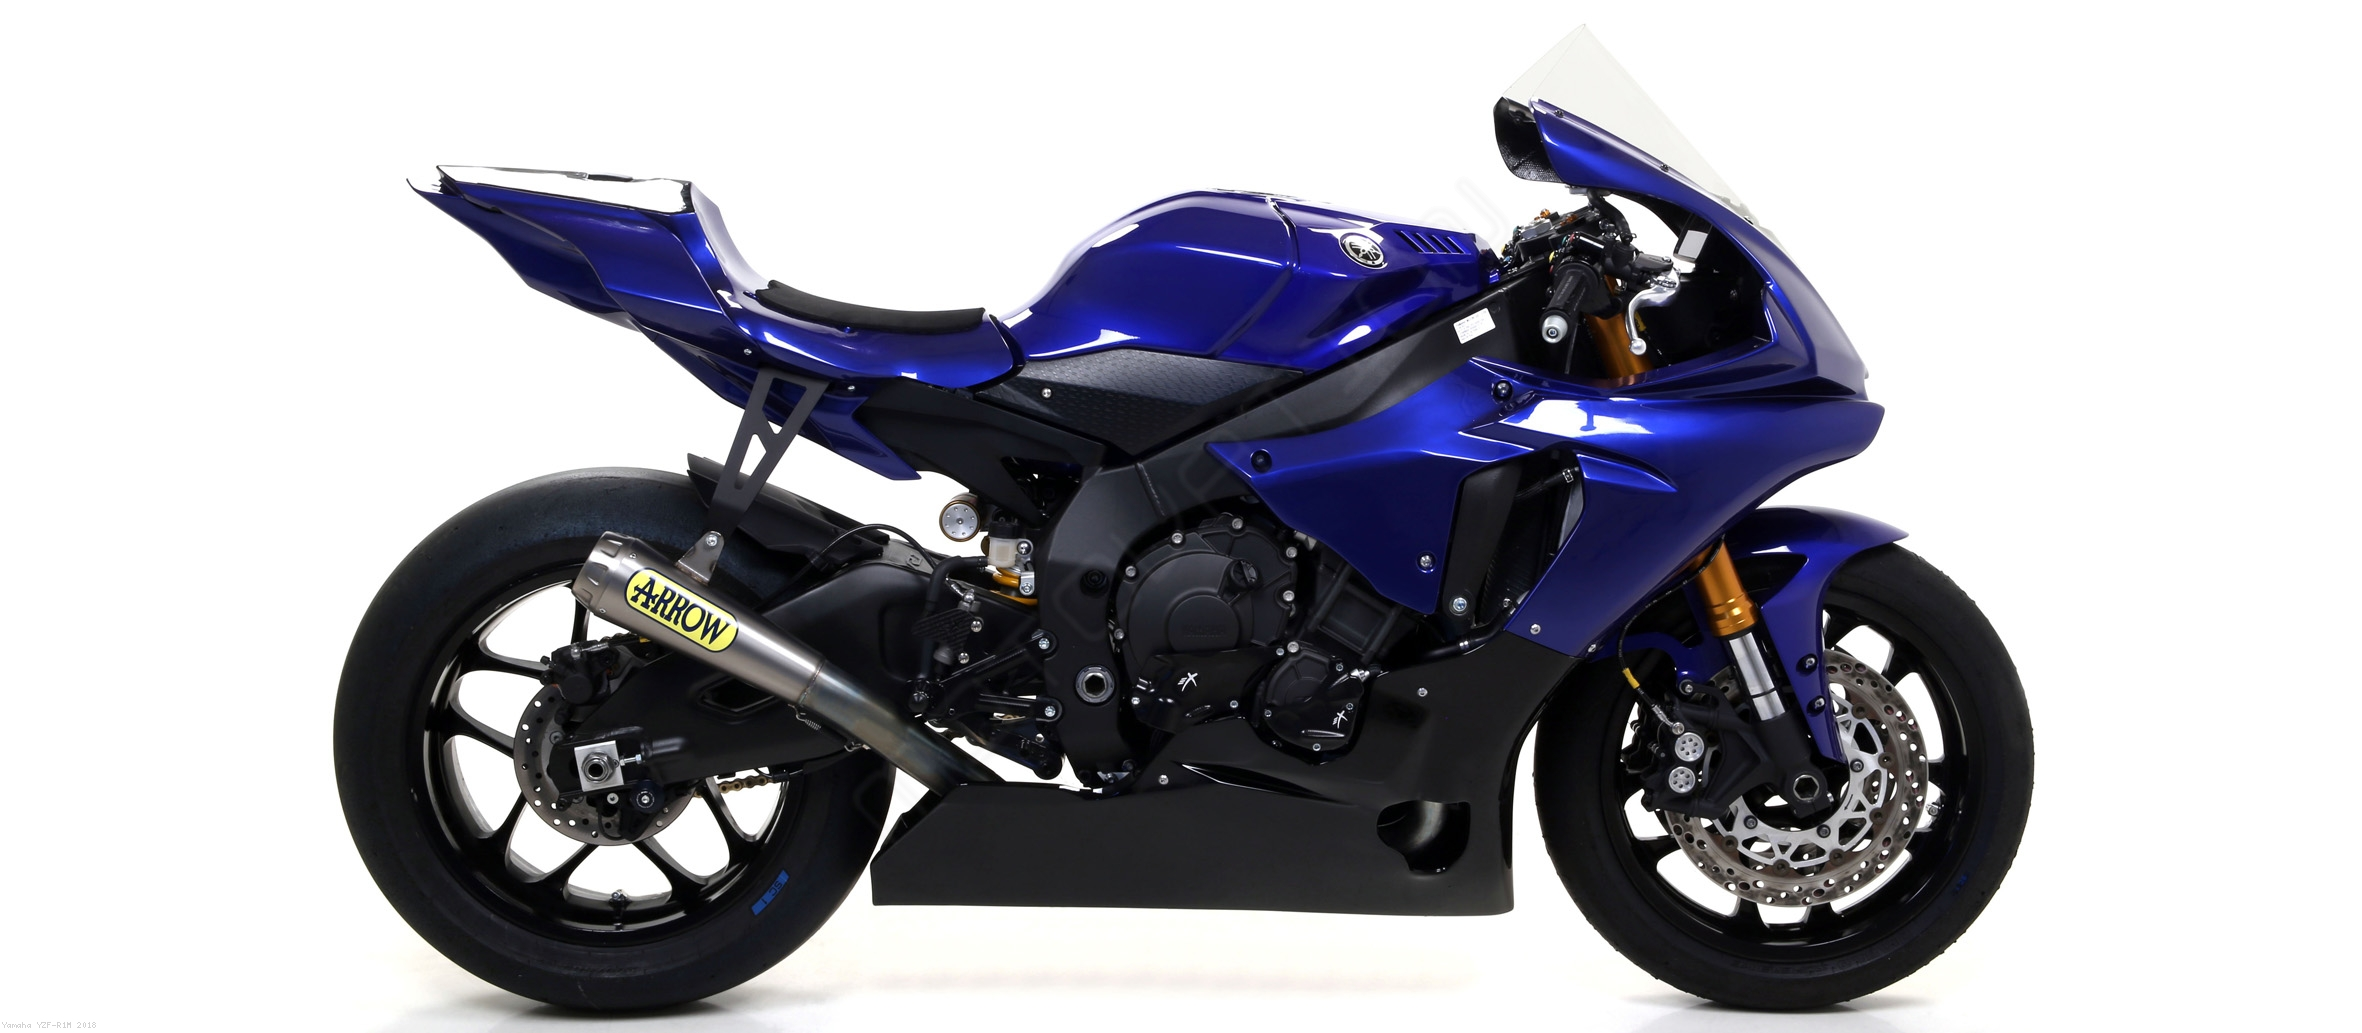 Competition evo full exhaust system by arrow yamaha for Yamaha exhaust systems